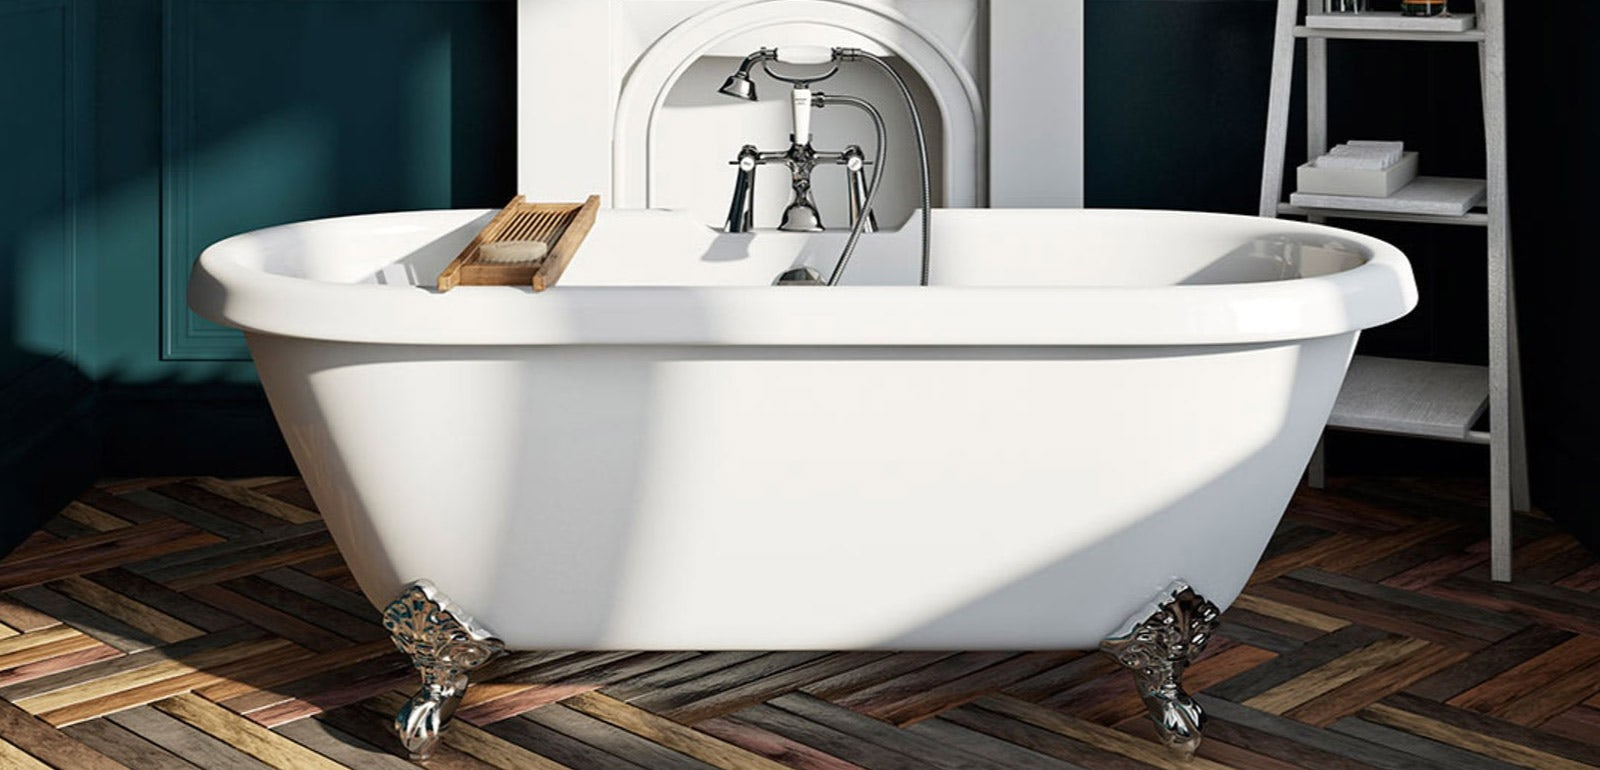 Immerse yourself in the history of baths